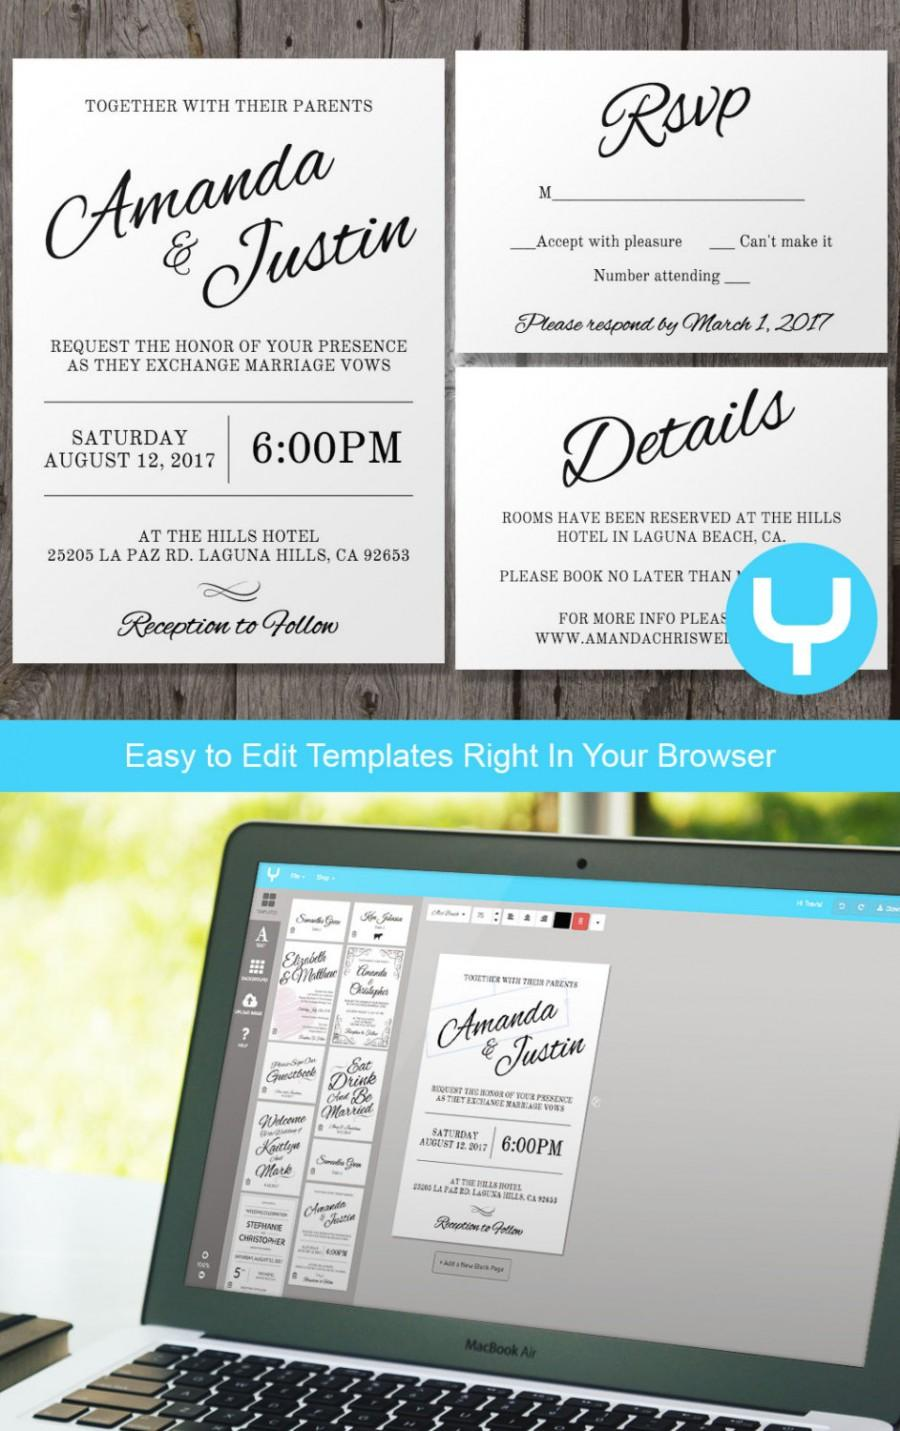 Mariage - Instant Download Printable Wedding Invitation + RSVP Template - Clean & Cursive - You Change Color and Text and Print